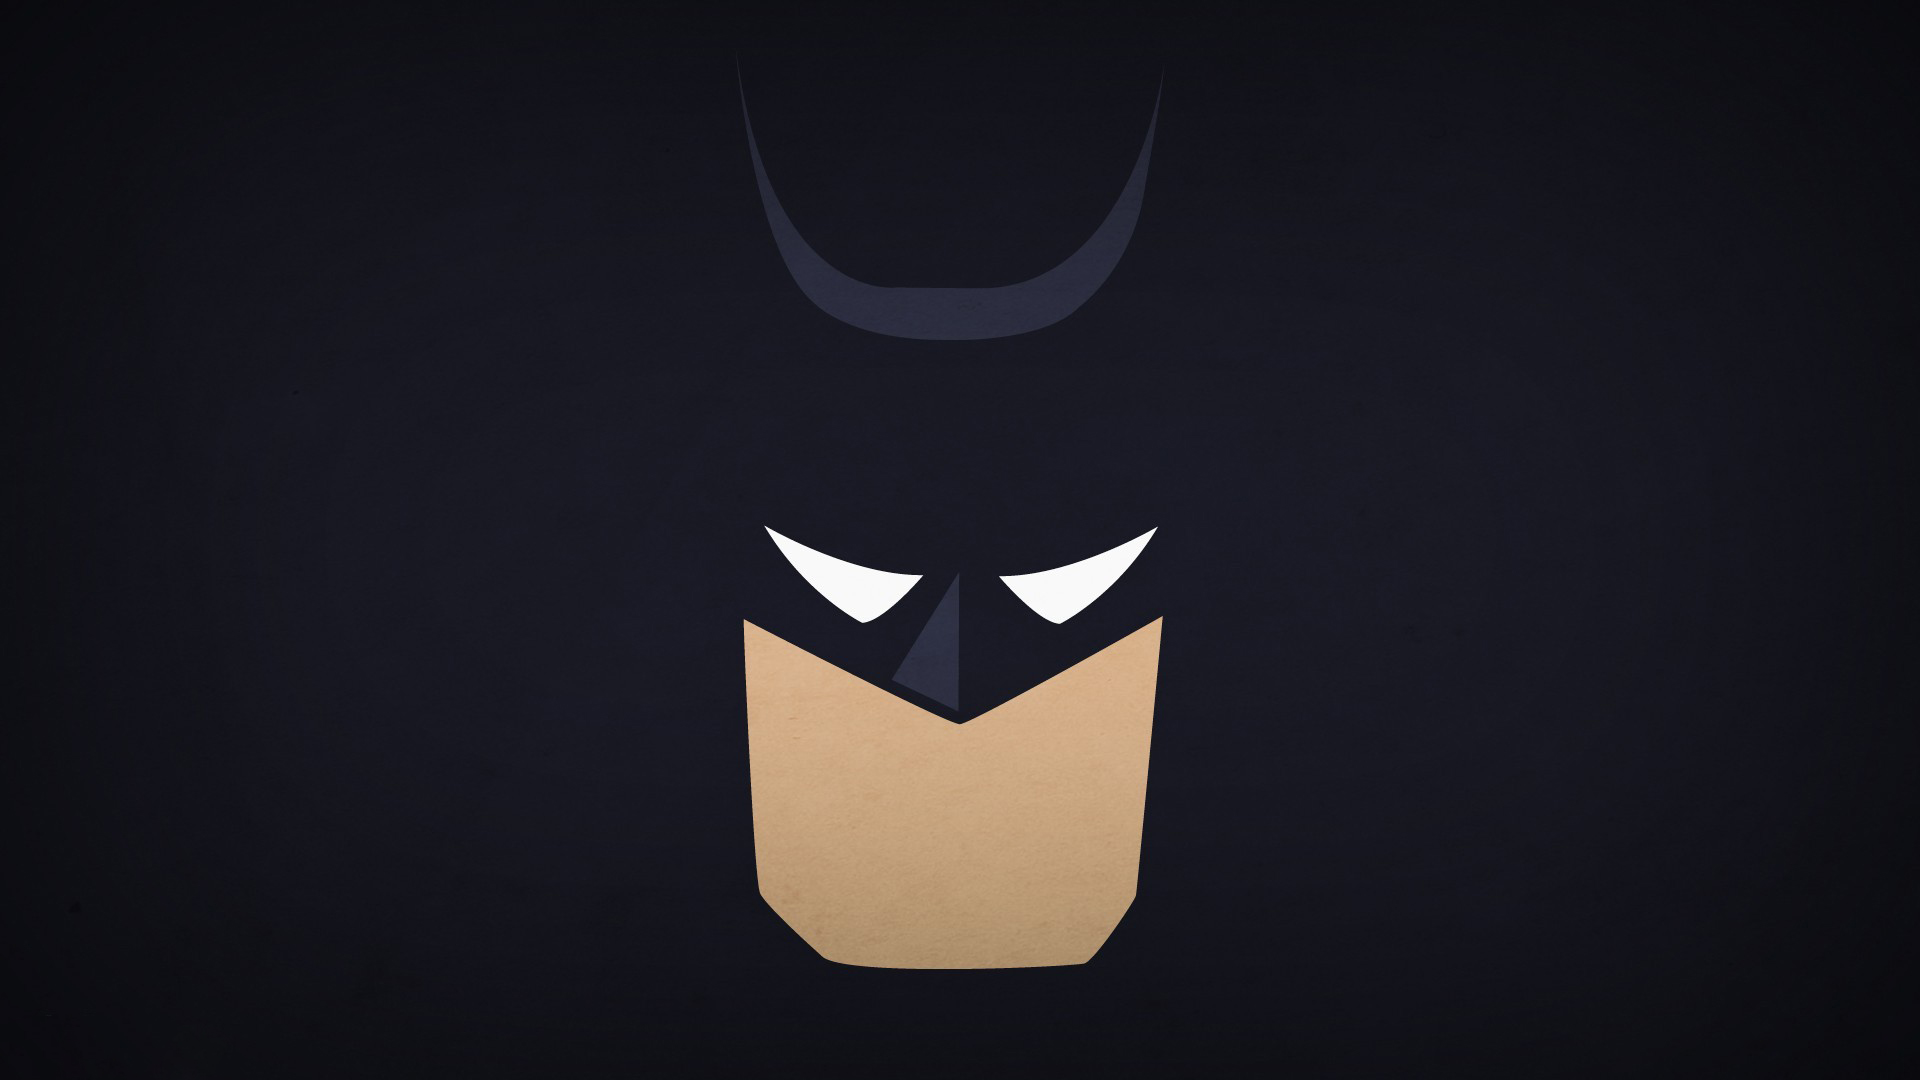 Batman HD Wallpapers for Desktop 3 1920x1080